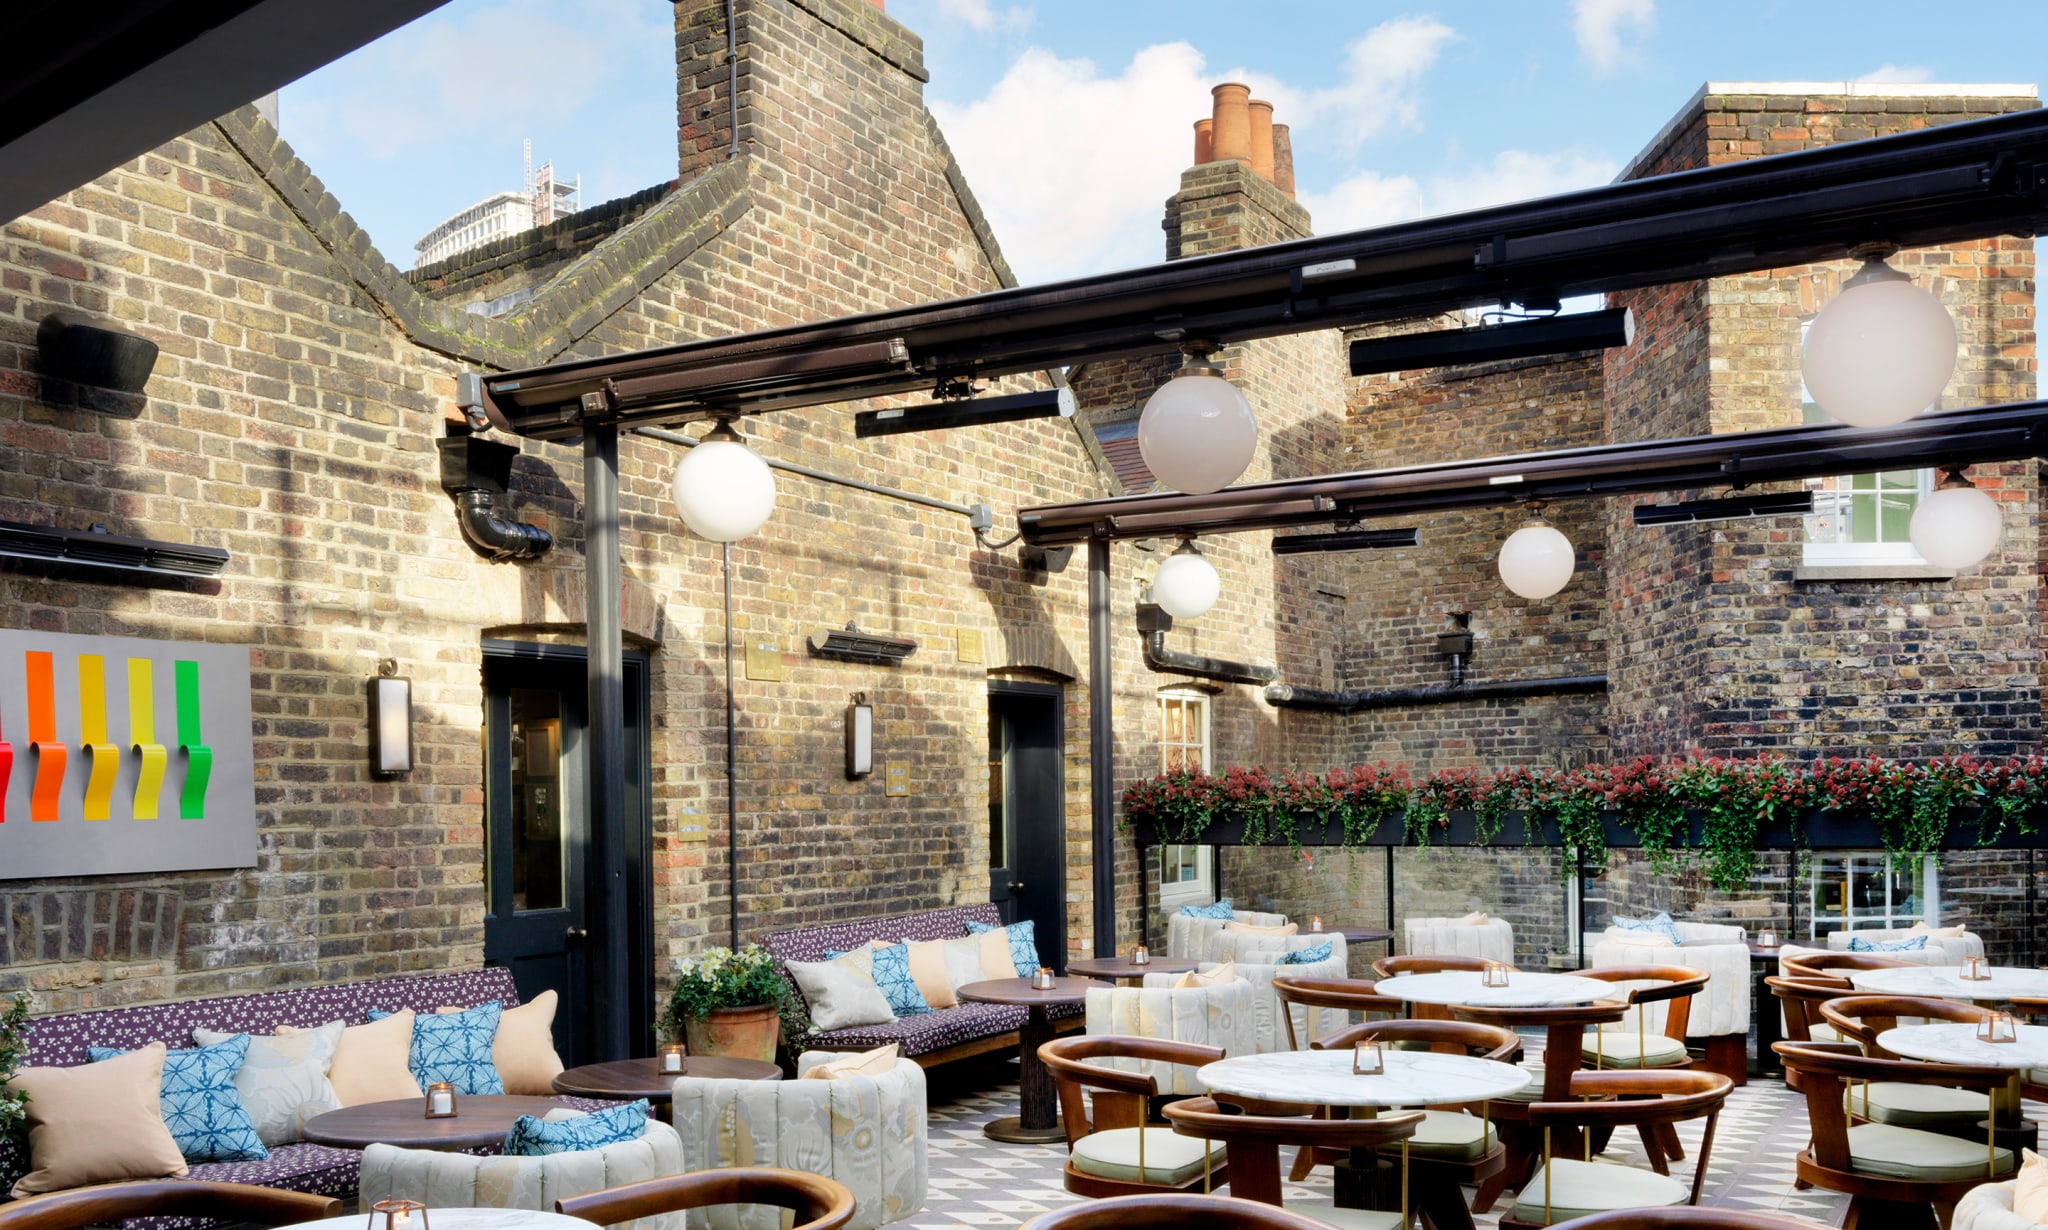 A roof terrace with many tables and chairs.